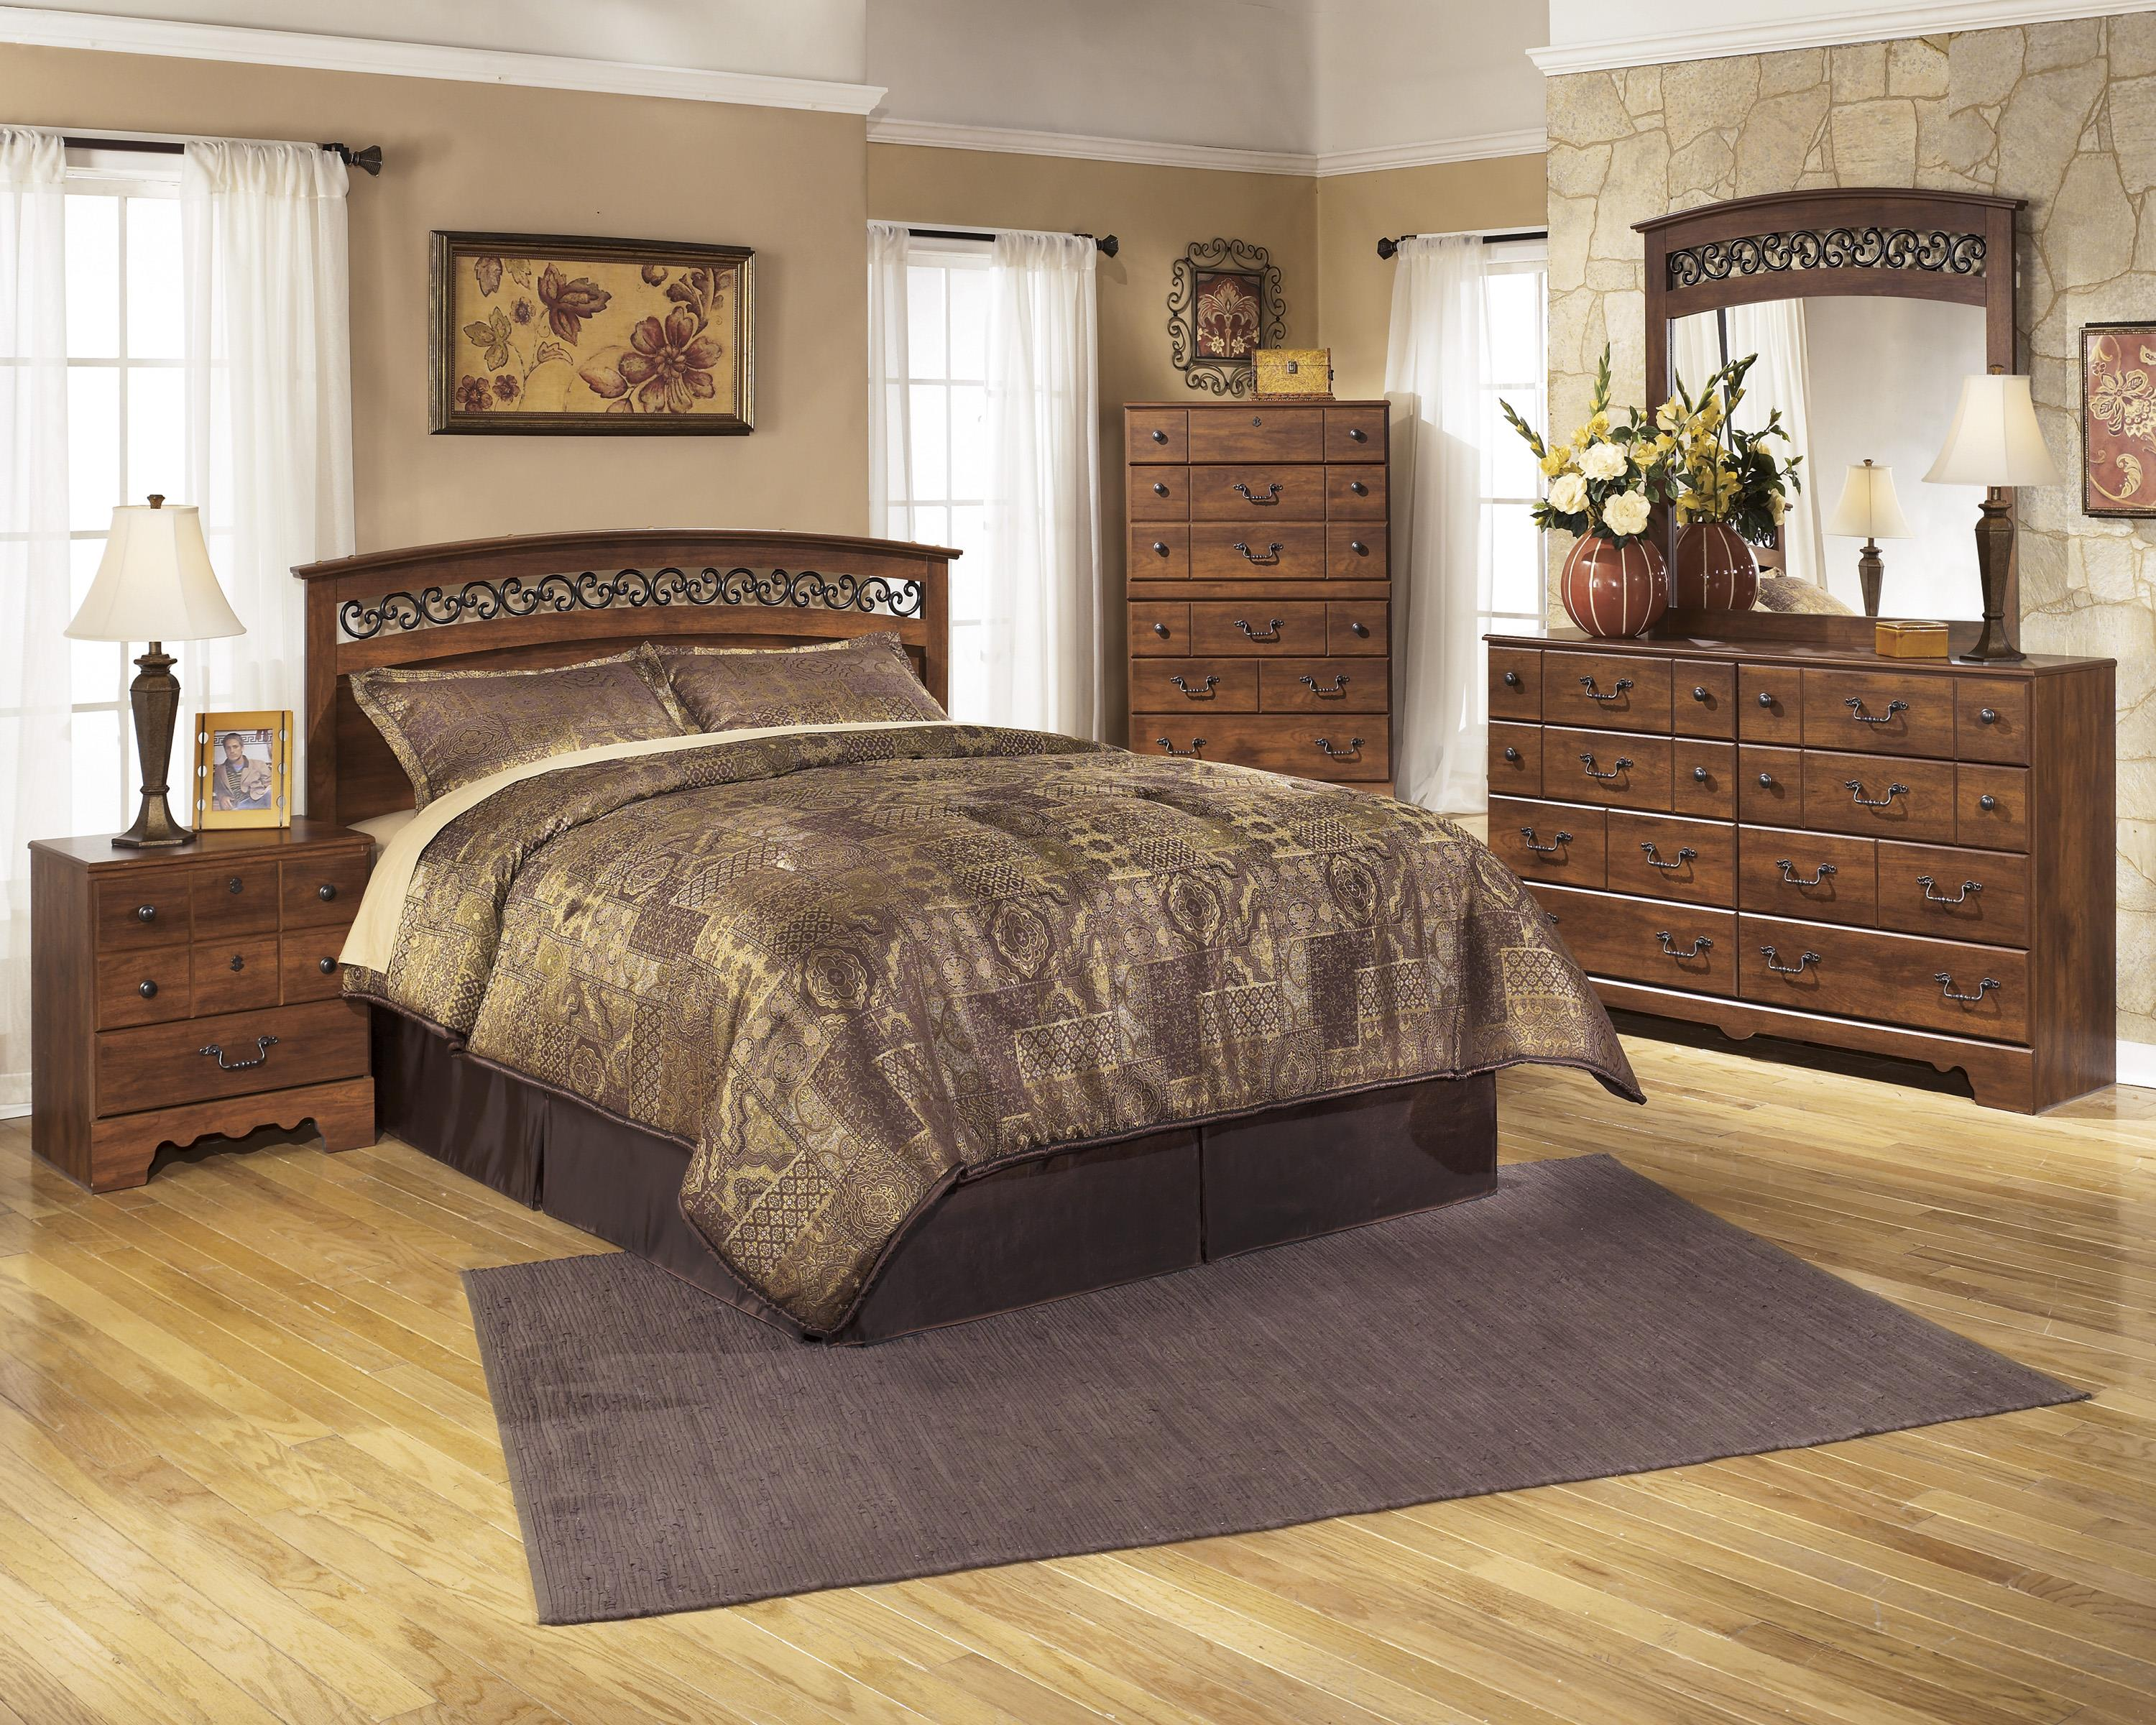 Timberline (258) by Signature Design by Ashley - Royal Furniture ...